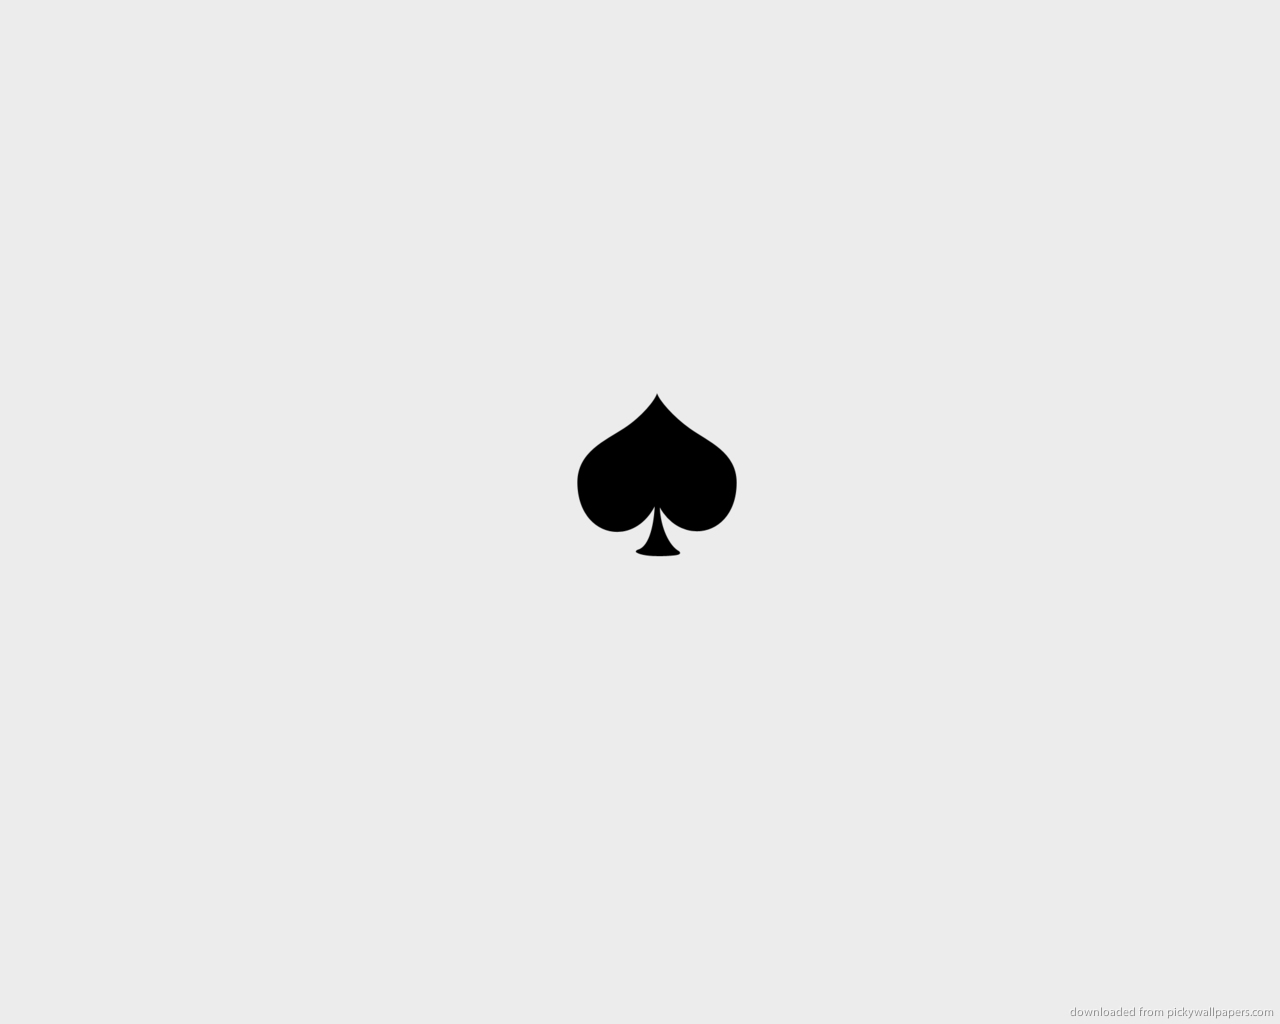 Ace Of Spades Wallpaper 2015 Wallpaper Box 1280x1024